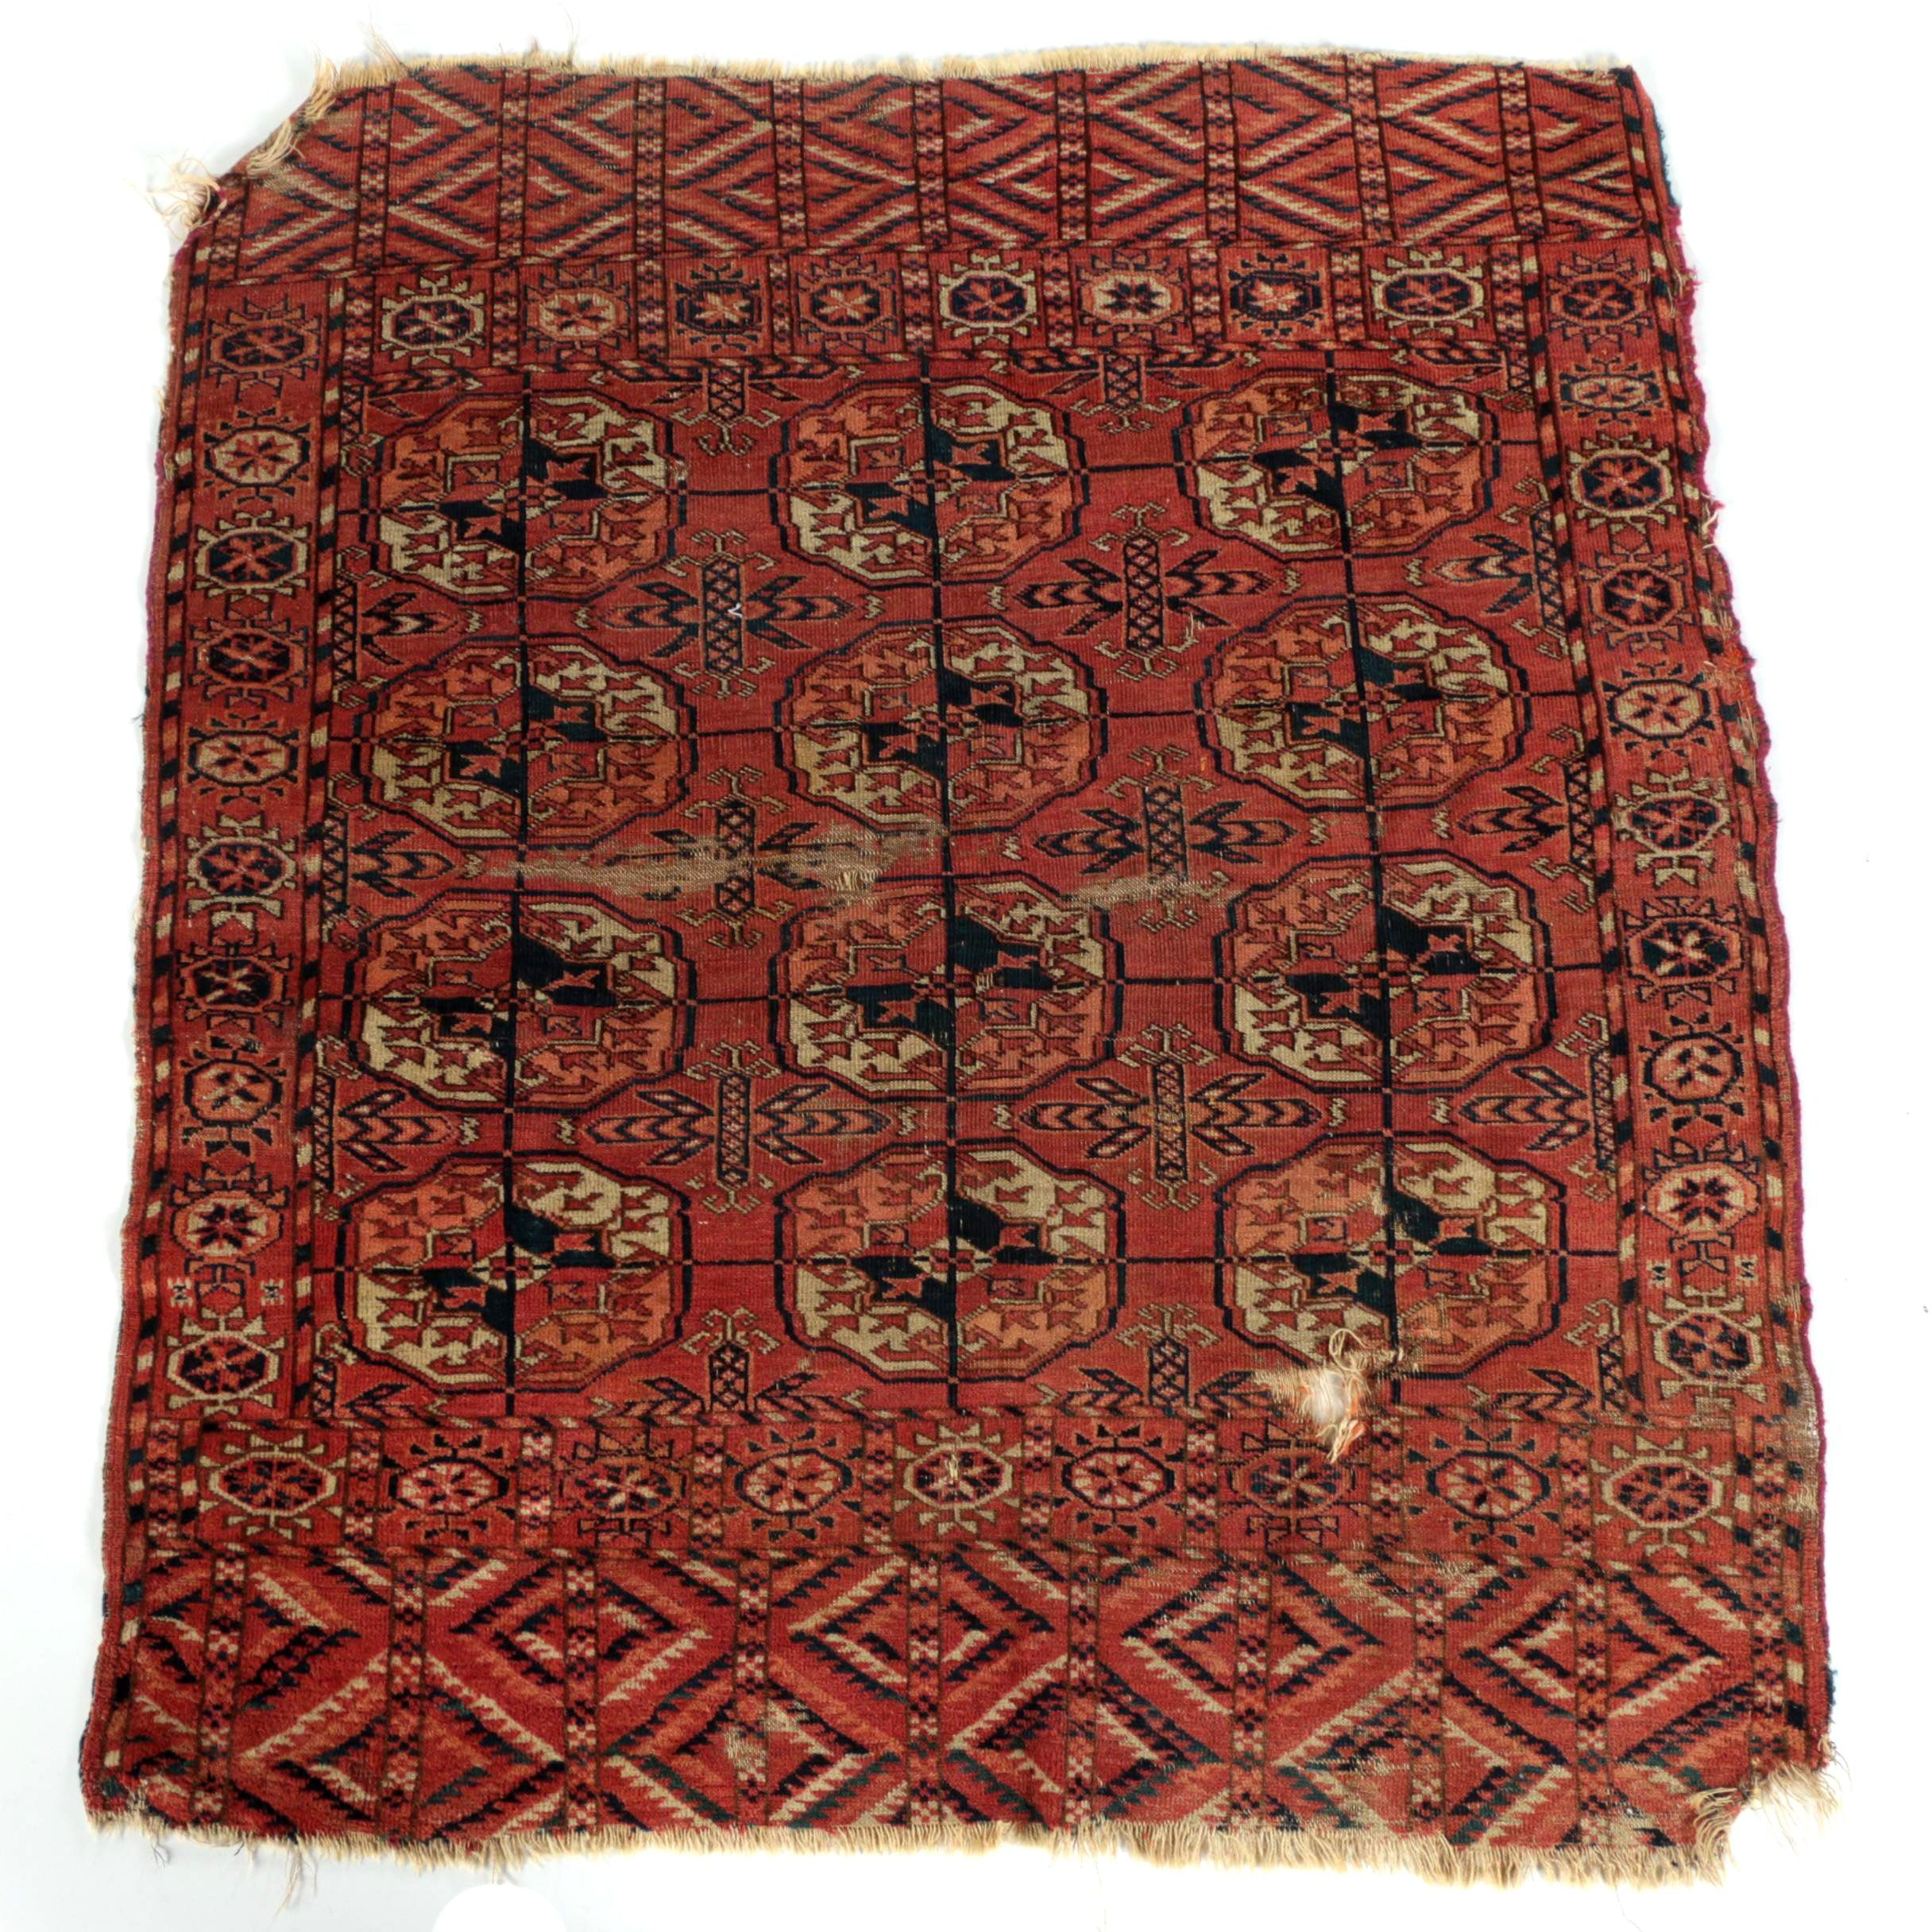 Antique Hand-Knotted Tekke Bokhara Tribal Accent Rug